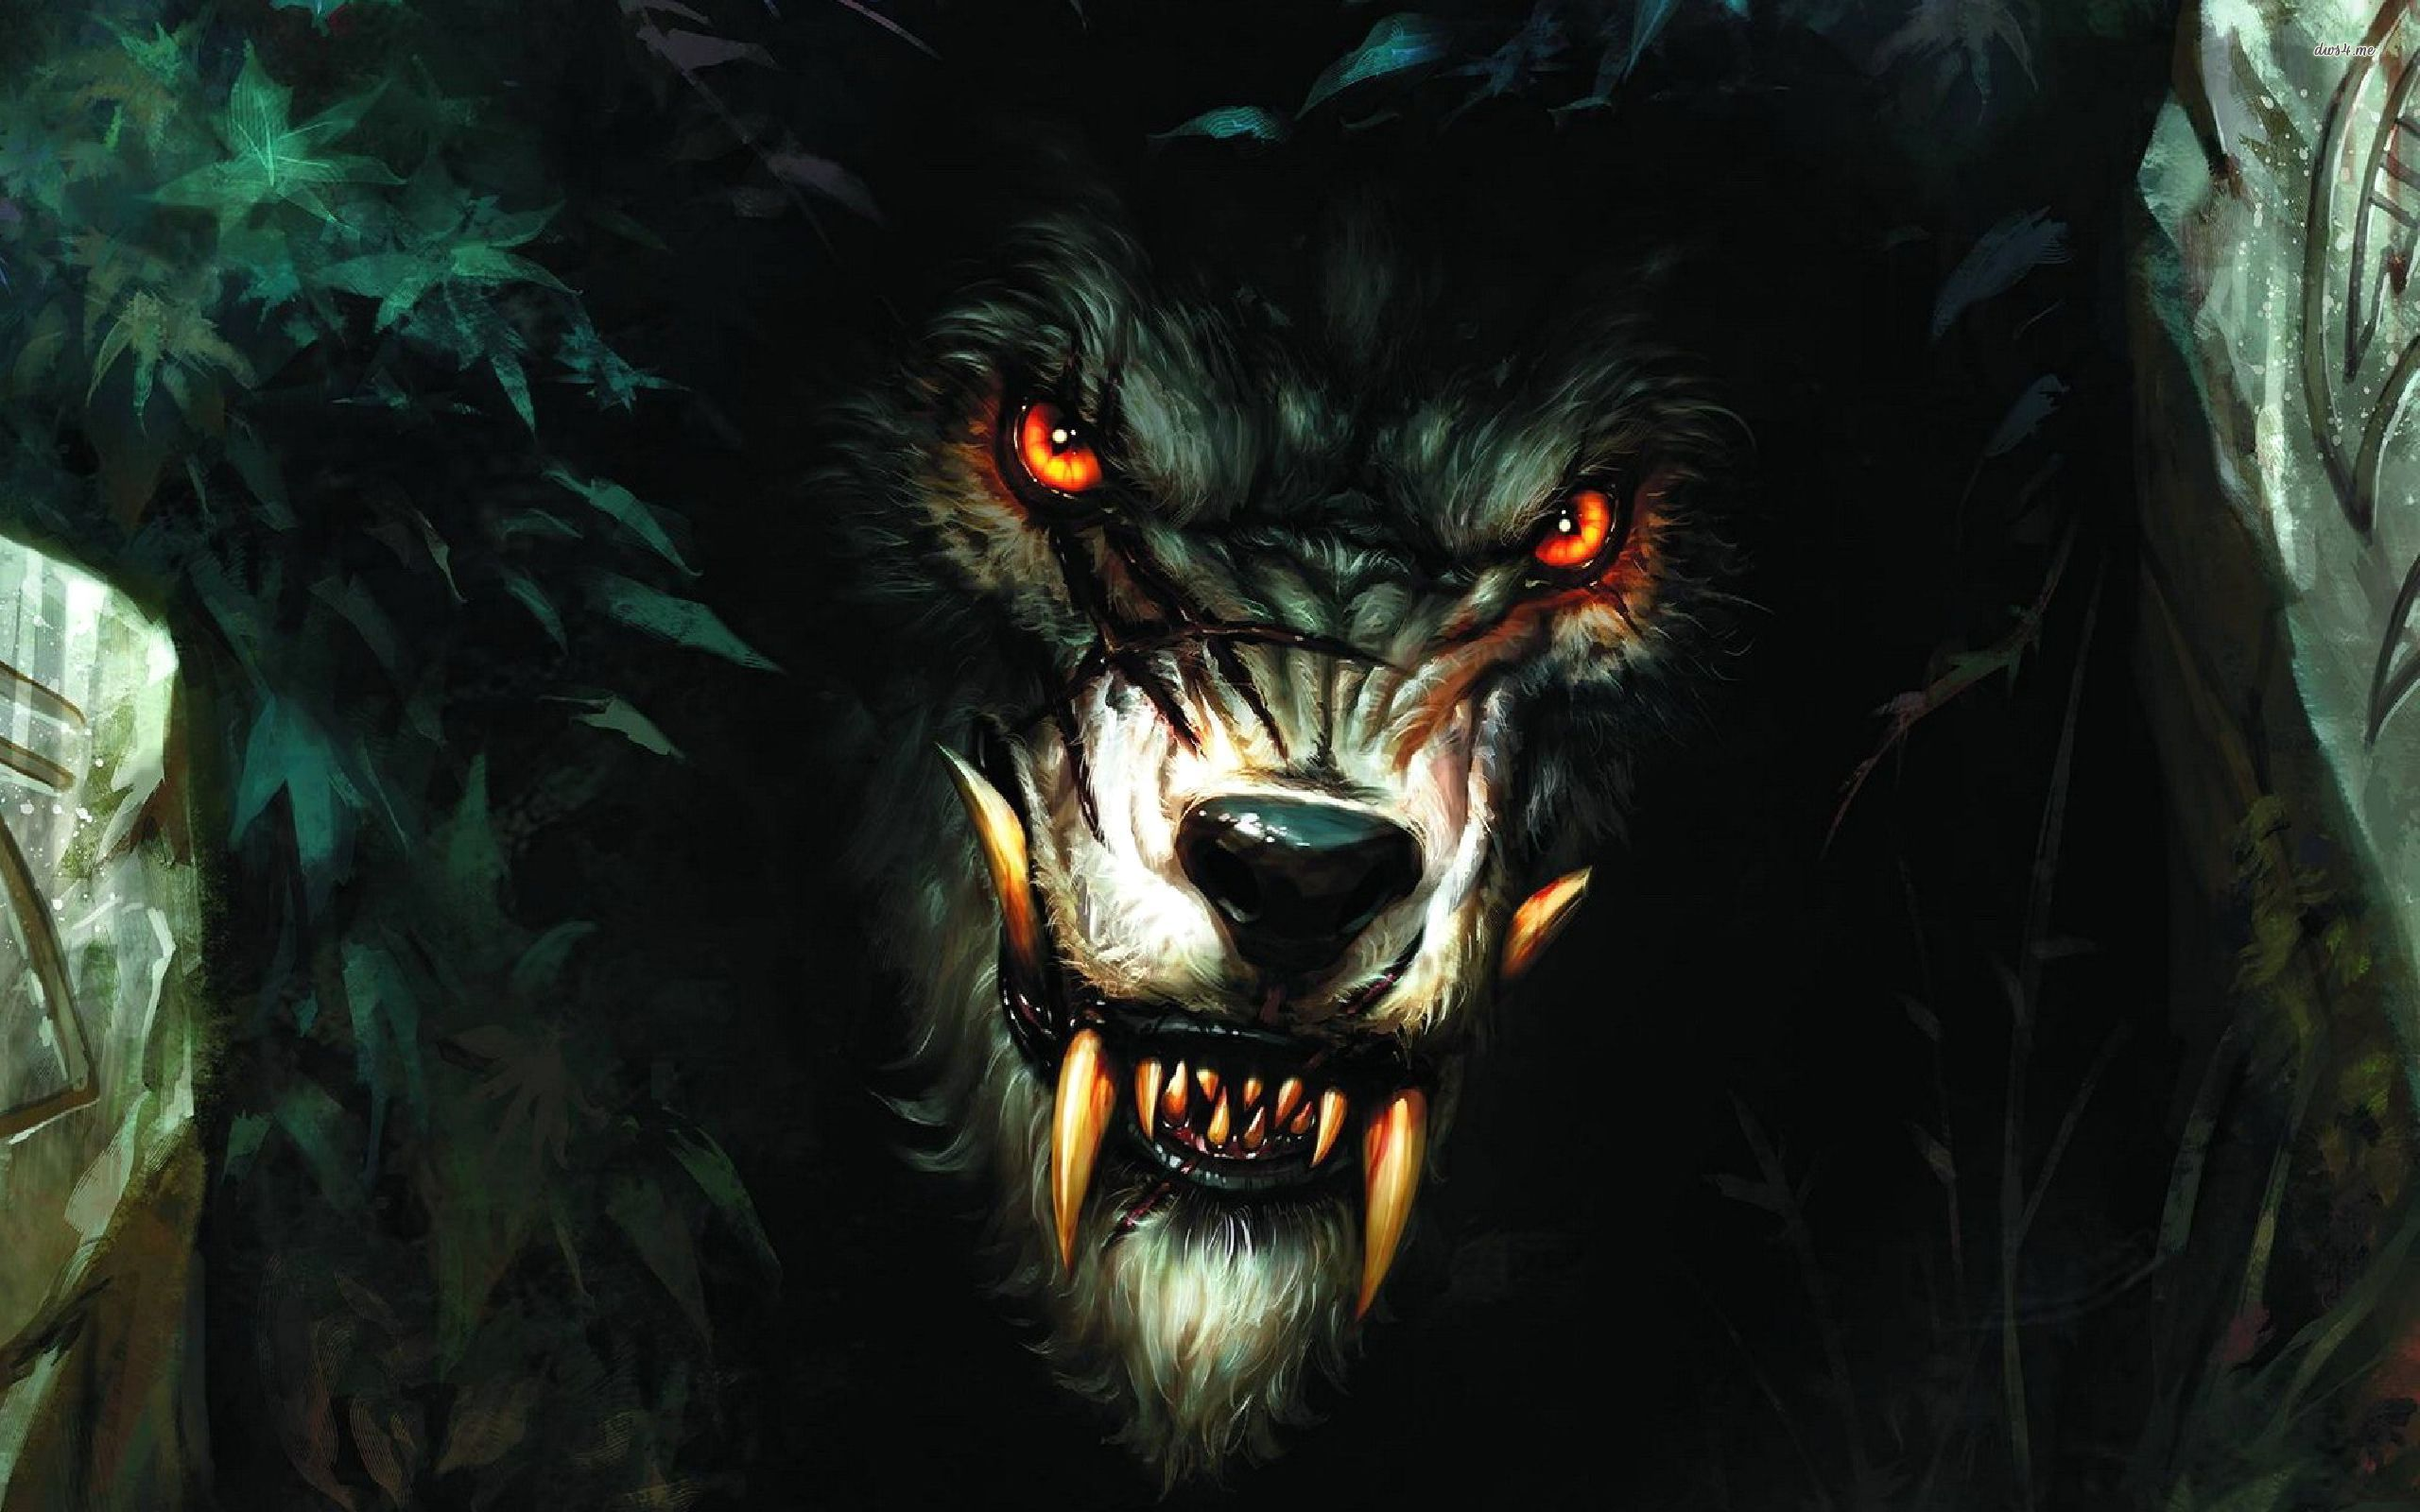 Fabuleux Loup Garou (Rougarou): The Cajun Legend - Mythologian.Net XJ79